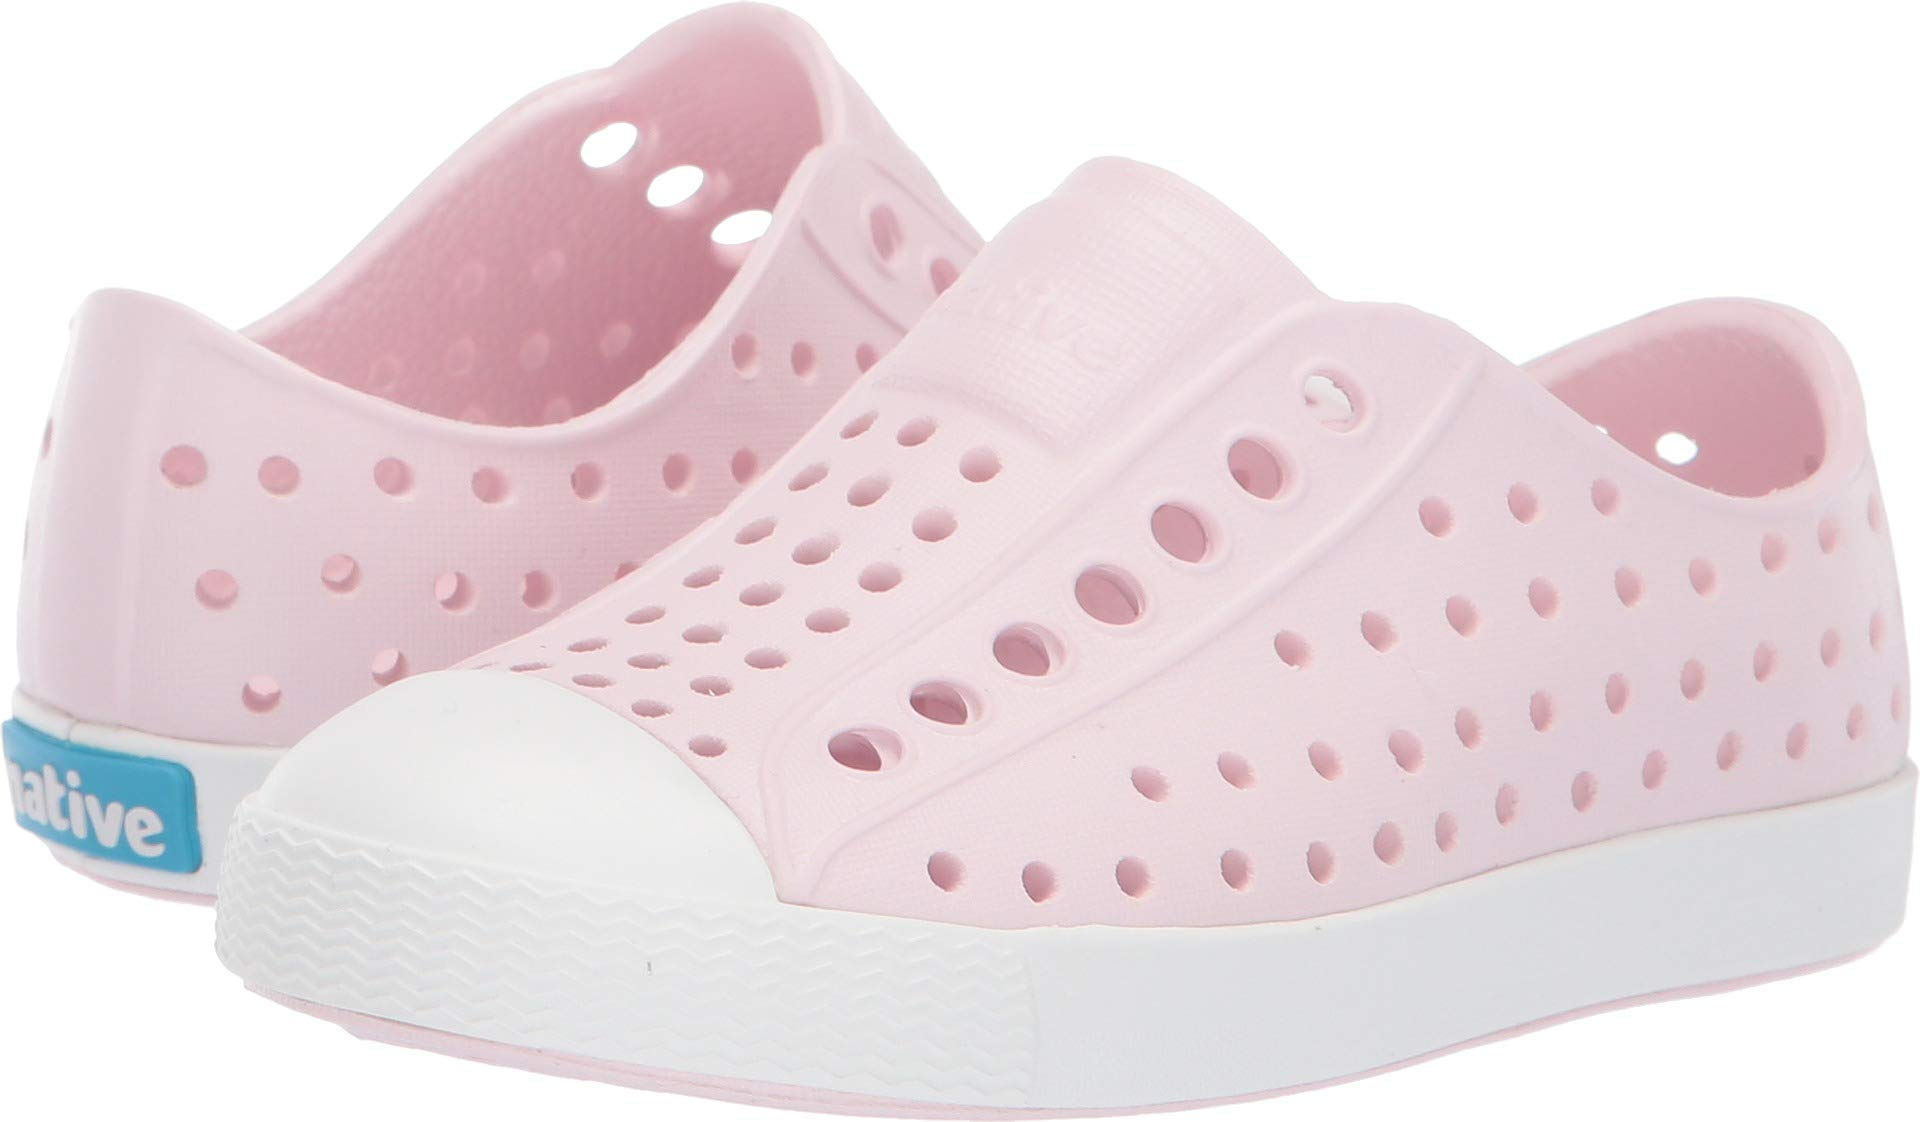 Native Shoes Girls' Jefferson Child Sneaker, Milk Pink/Shell White, 6 M US Toddler by Native Shoes